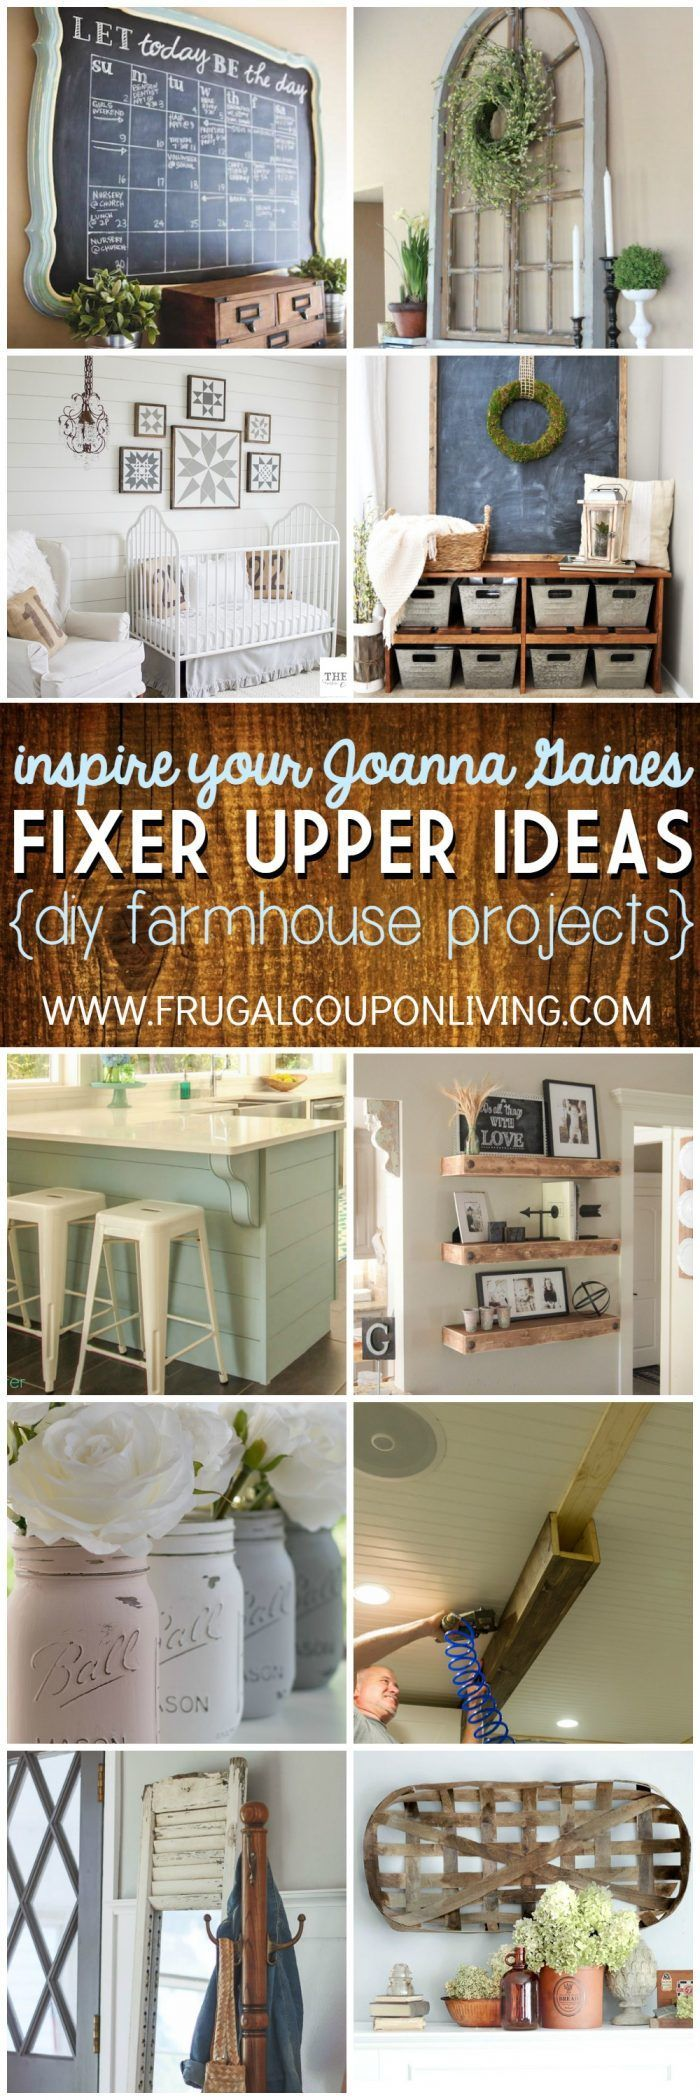 Inspire Your Joanna Gaines - DIY Fixer Upper Ideas on Frugal Coupon Living. DIY ...